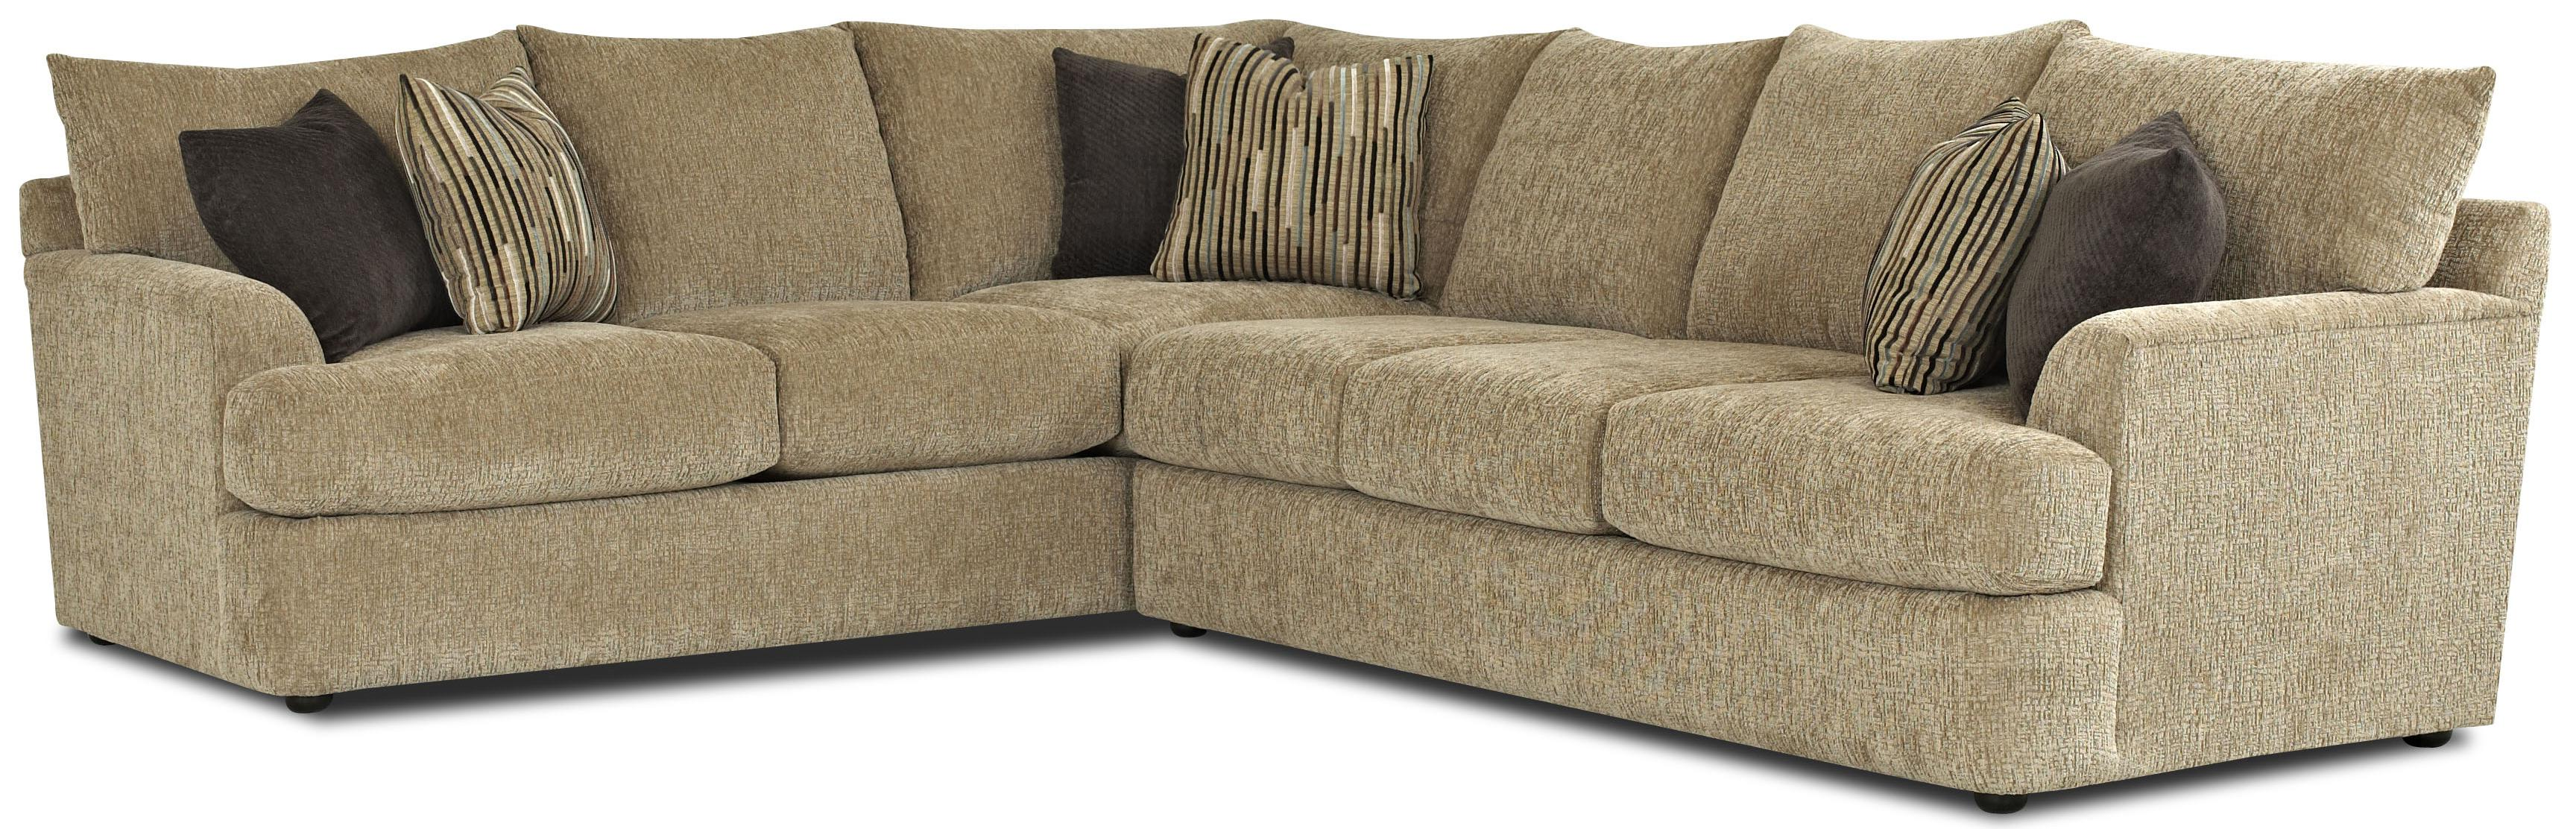 L Shaped Sleeper Sectional